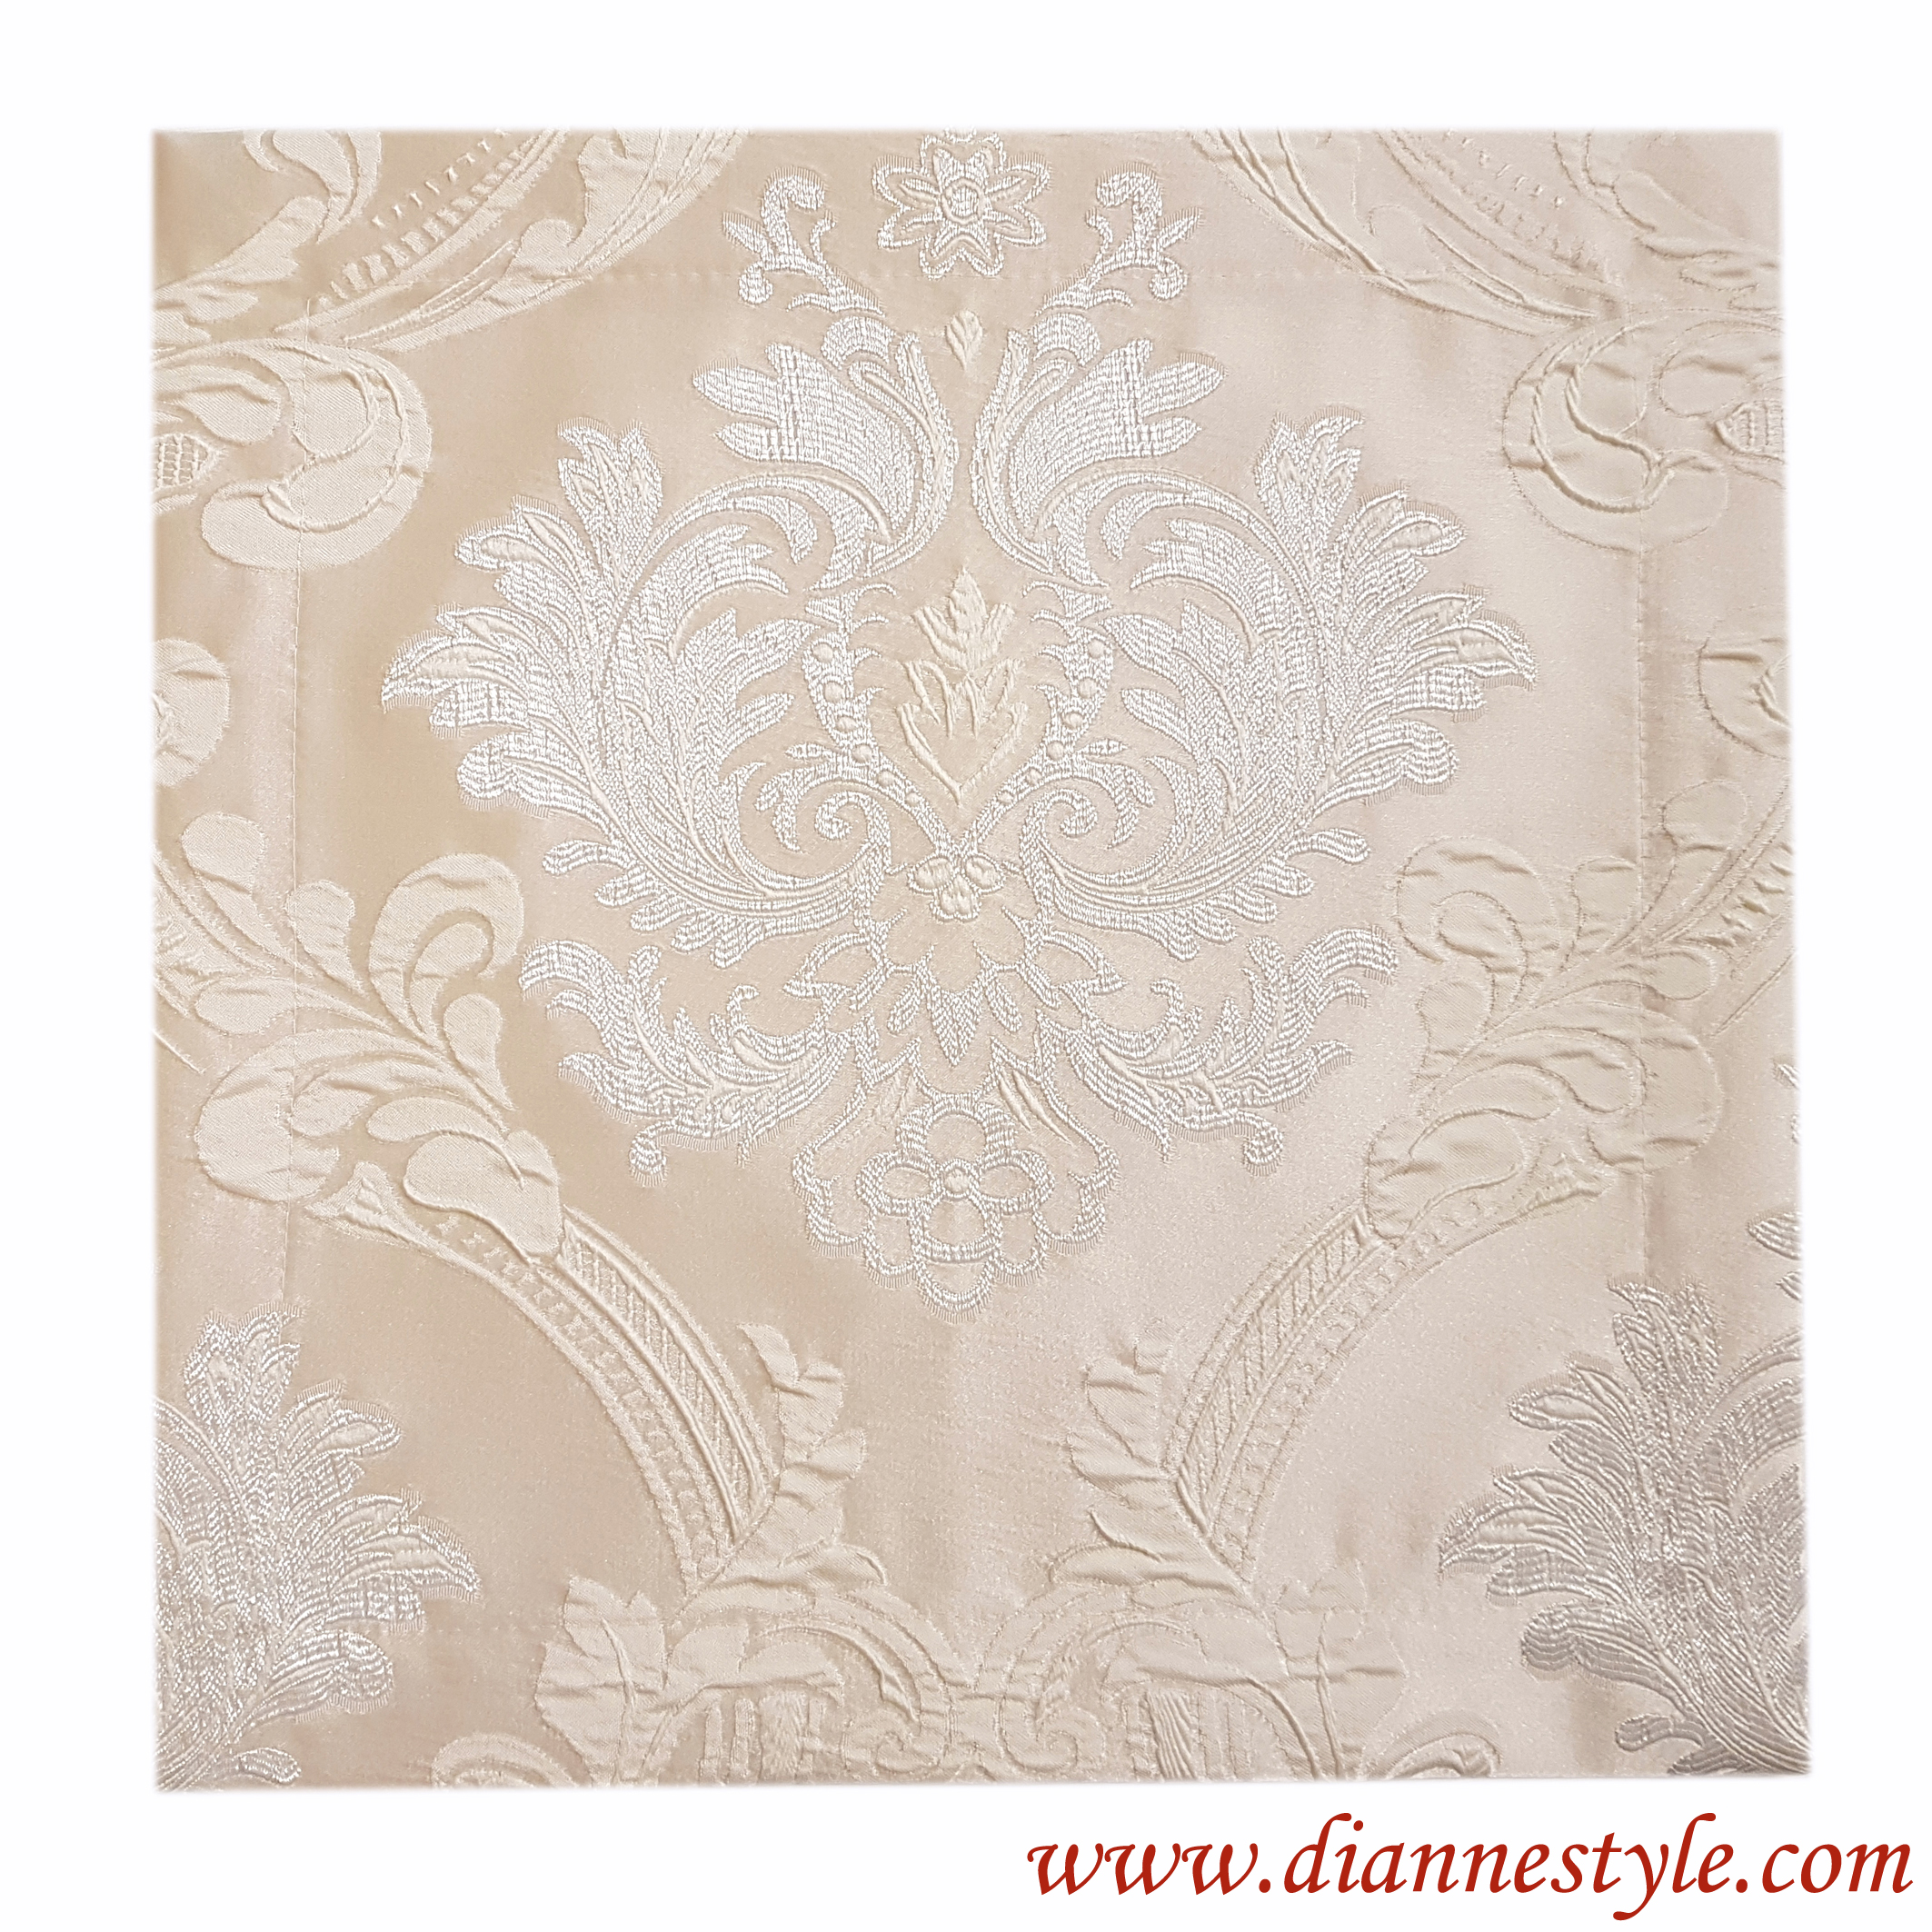 Serviette de table damassée beige Prestige 40x40 cm. Réf. 182